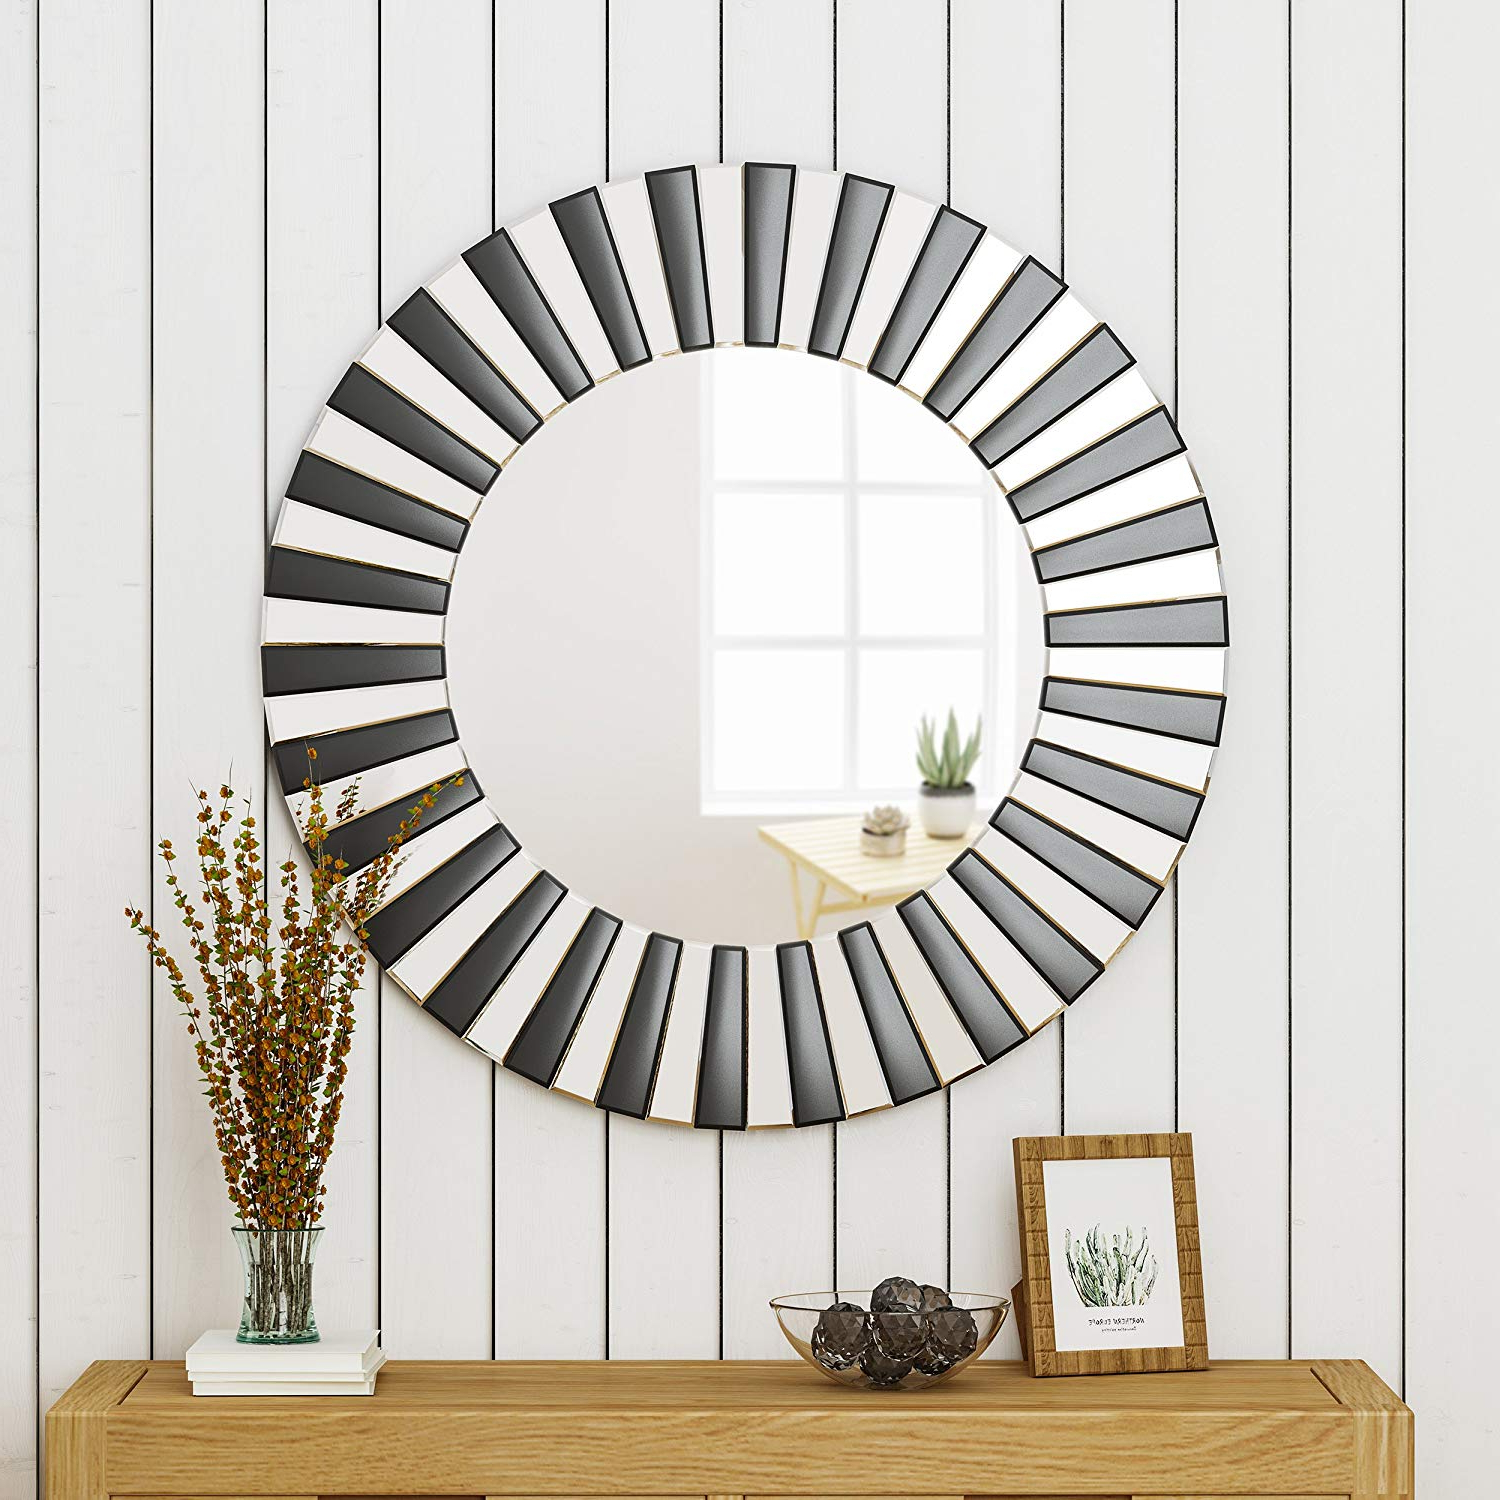 Abell Glam Circular Wall Mirror Intended For Best And Newest Circular Wall Mirrors (View 17 of 20)